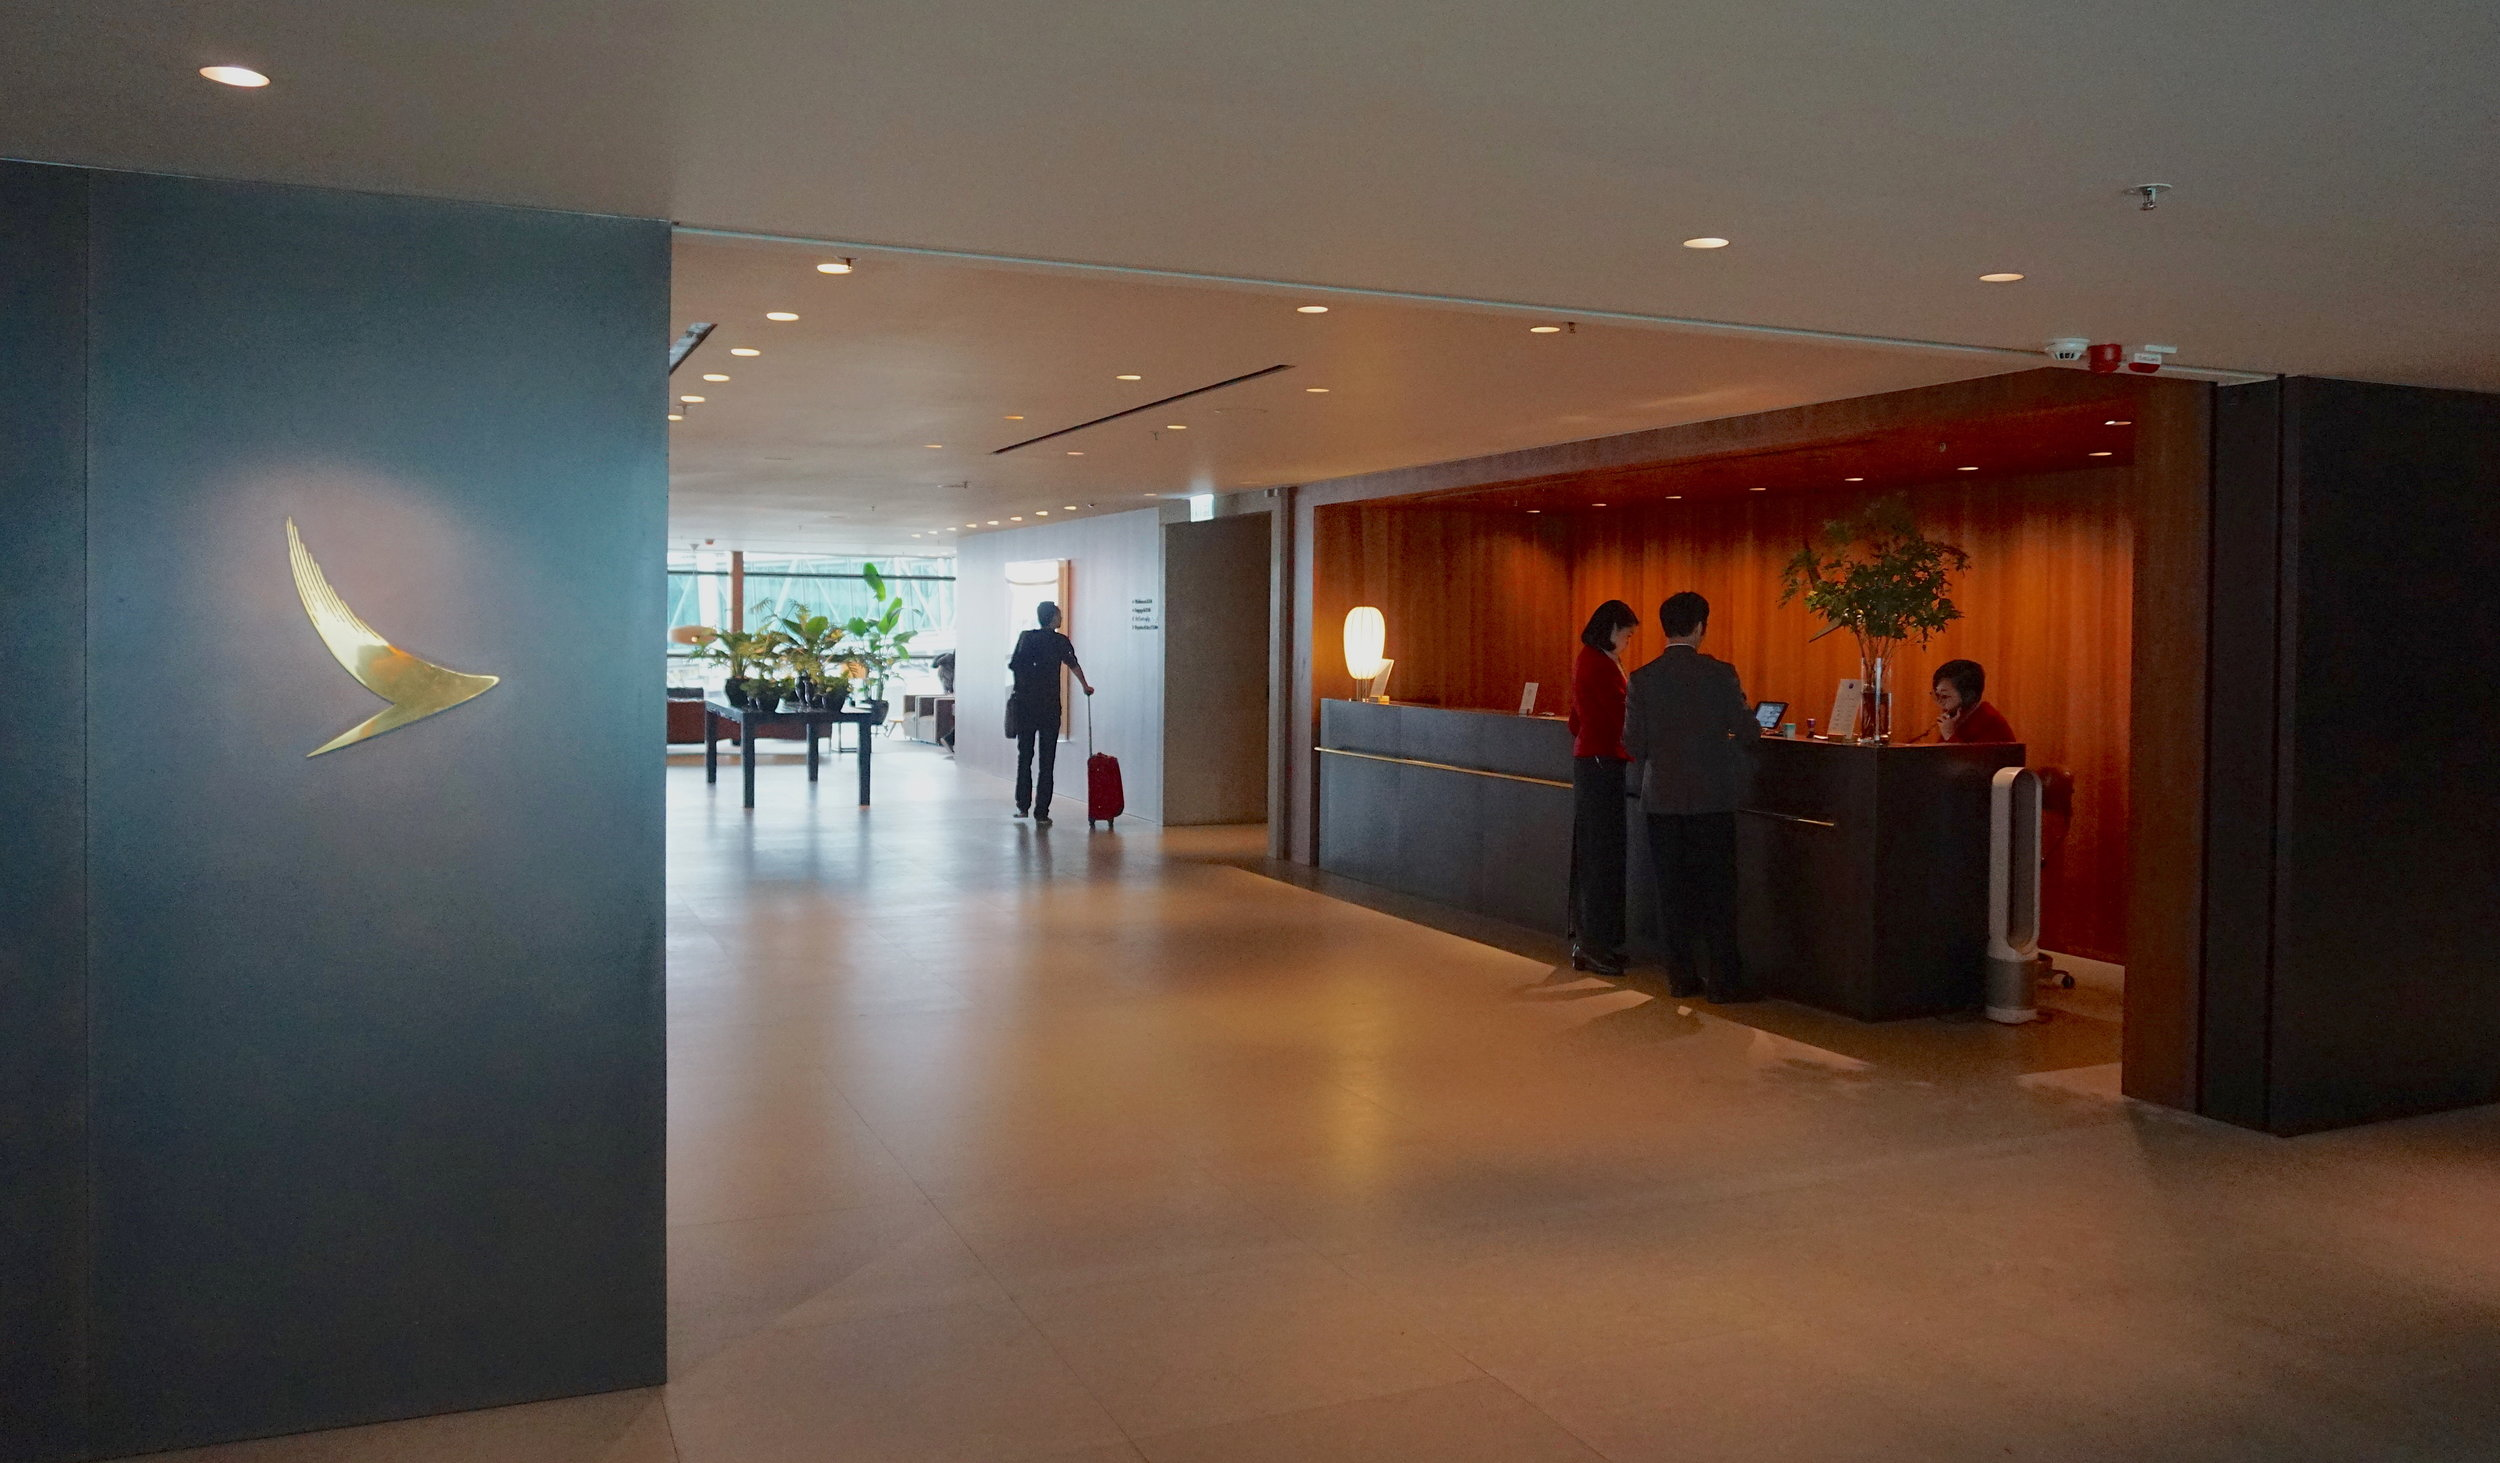 Cathay Pacific's Pier Business Class Lounge reception